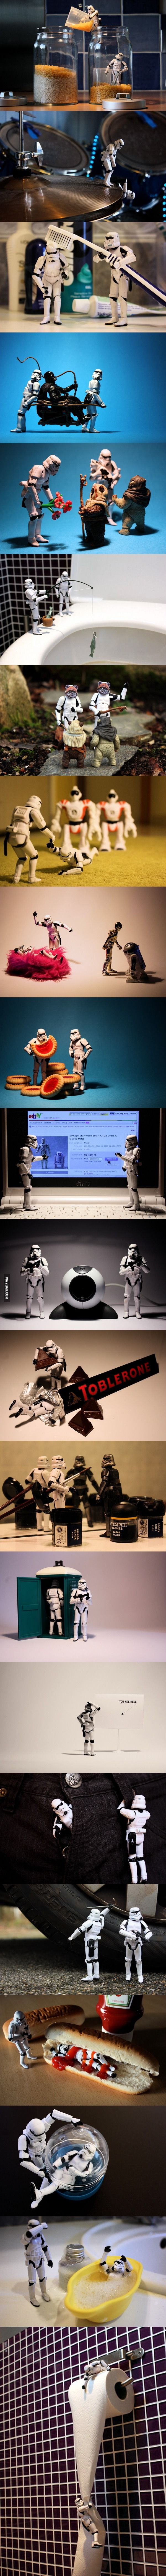 A day in the life of stormtrooper. ...its sad BC I'd do this in my spare time if I had these in my possession...